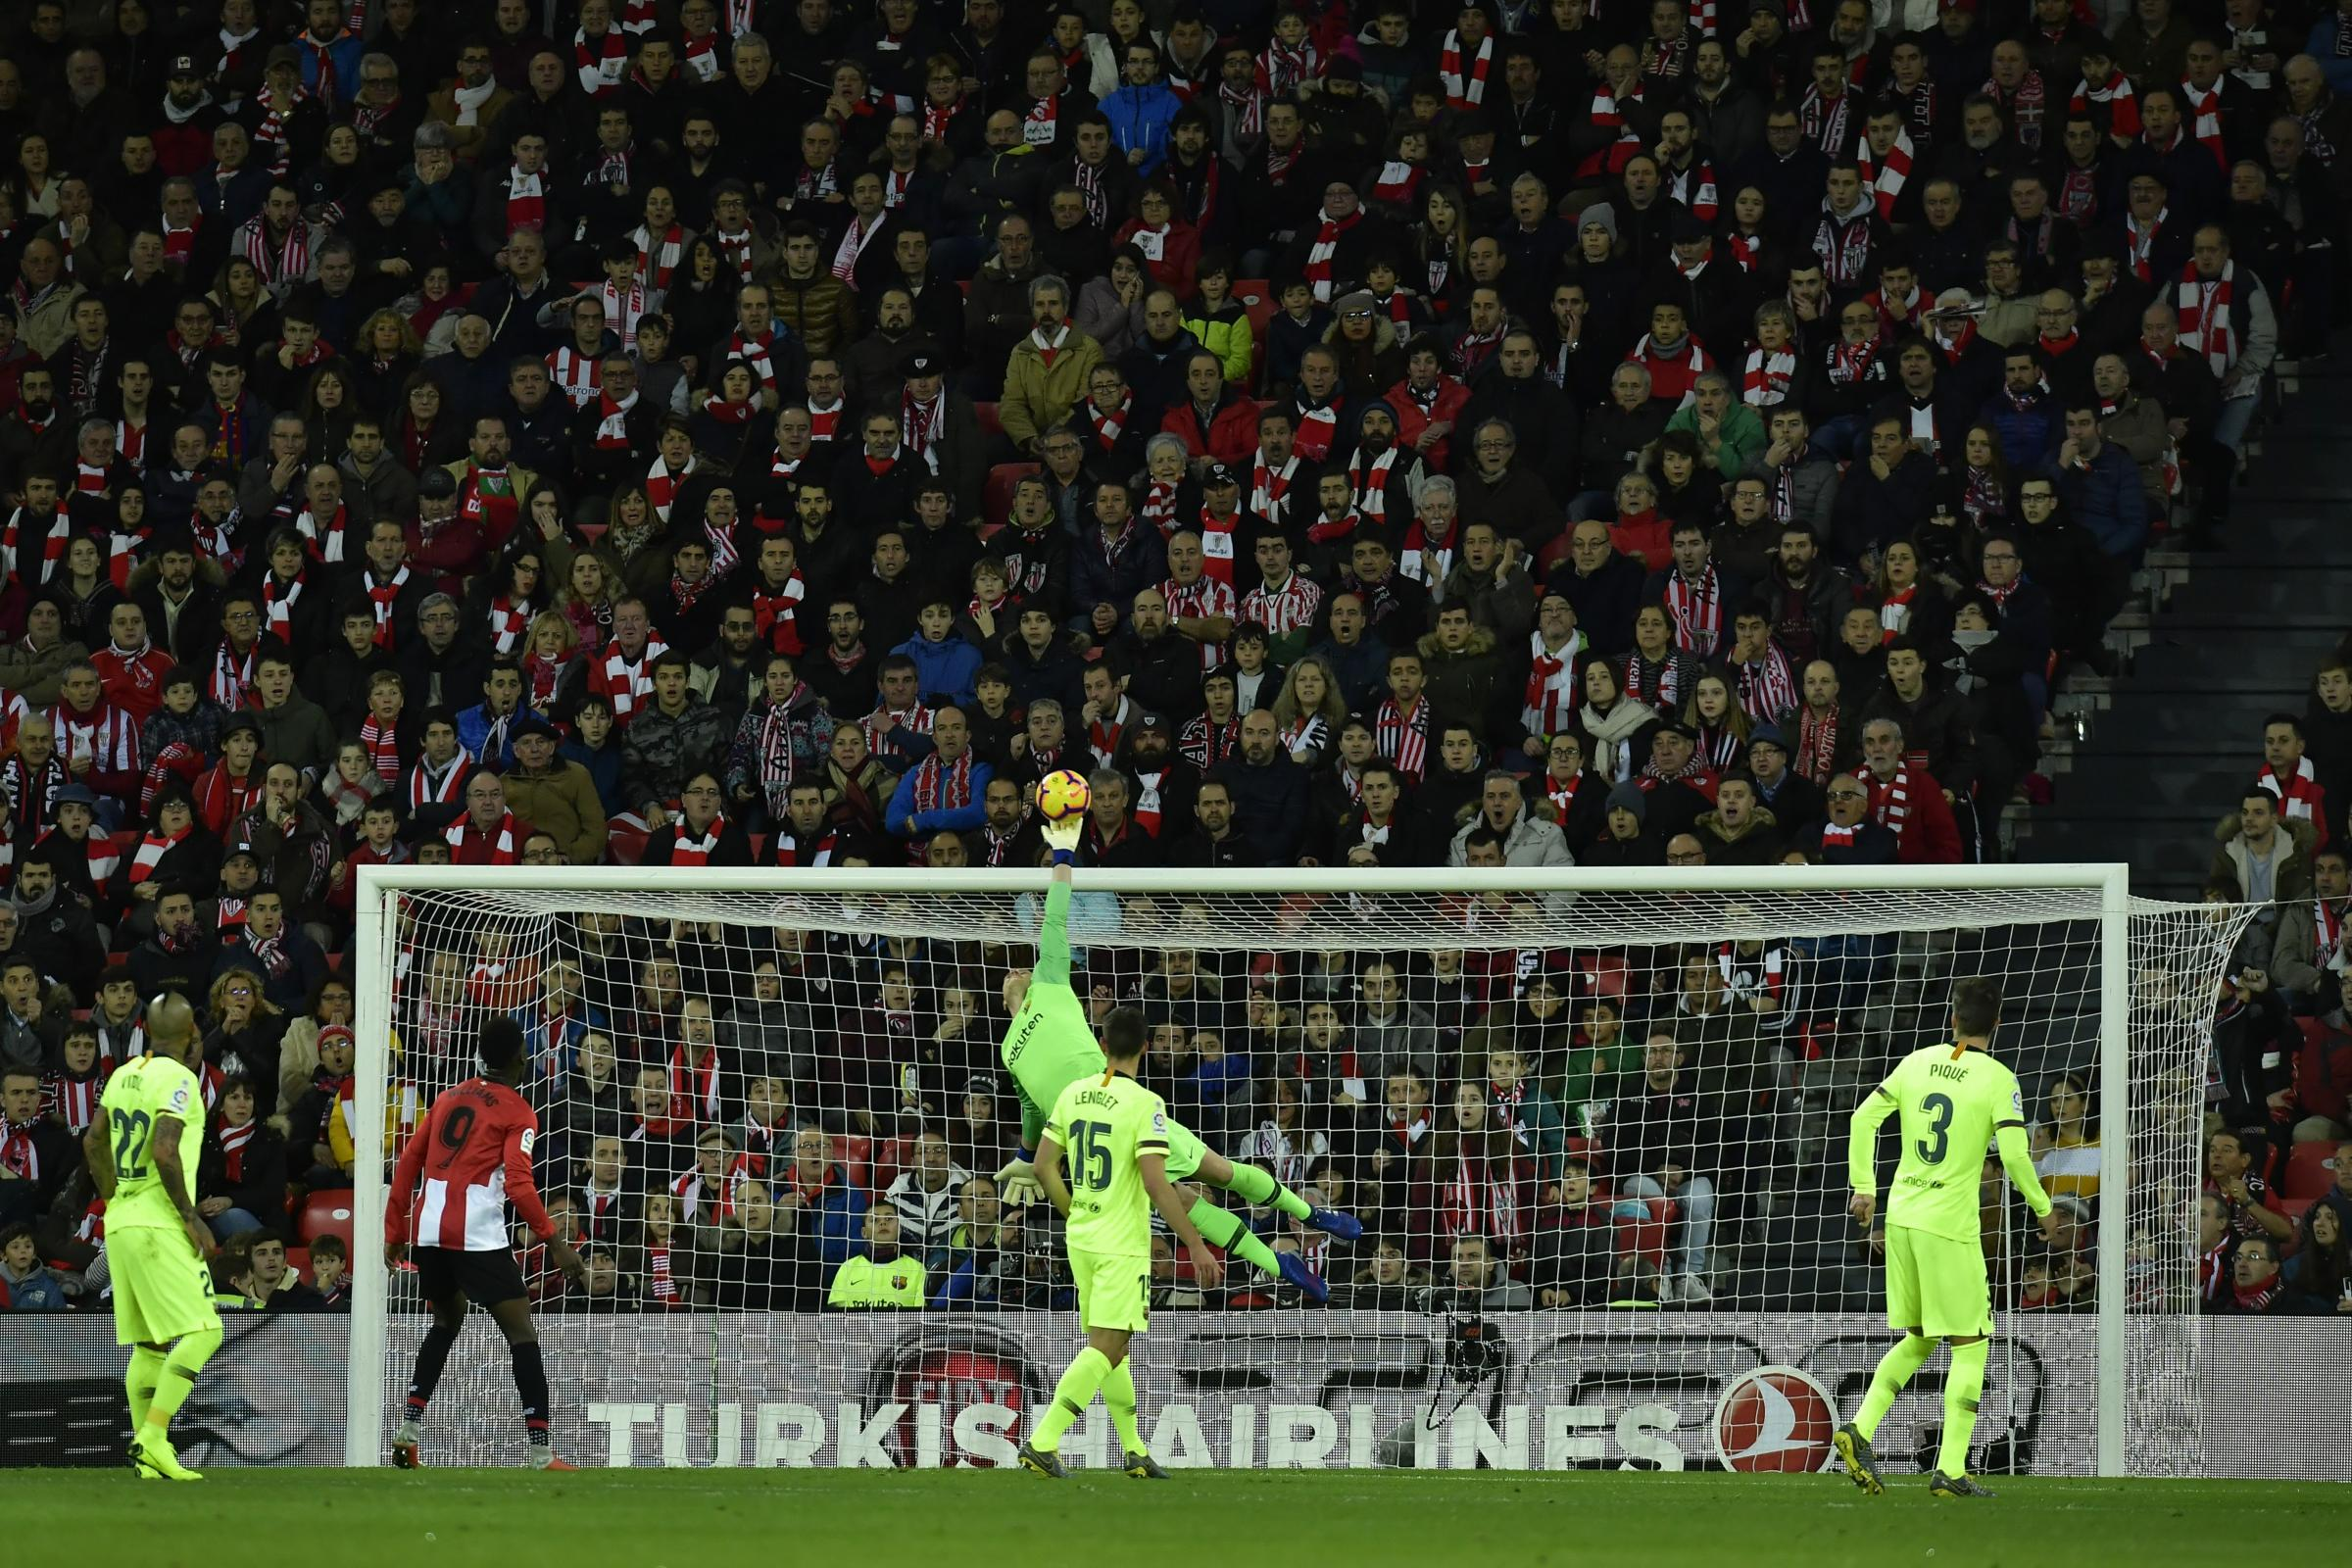 Barcelona keeper Marc-Andre ter Stegen saves from Athletic Bilbao's Markel Susaeta